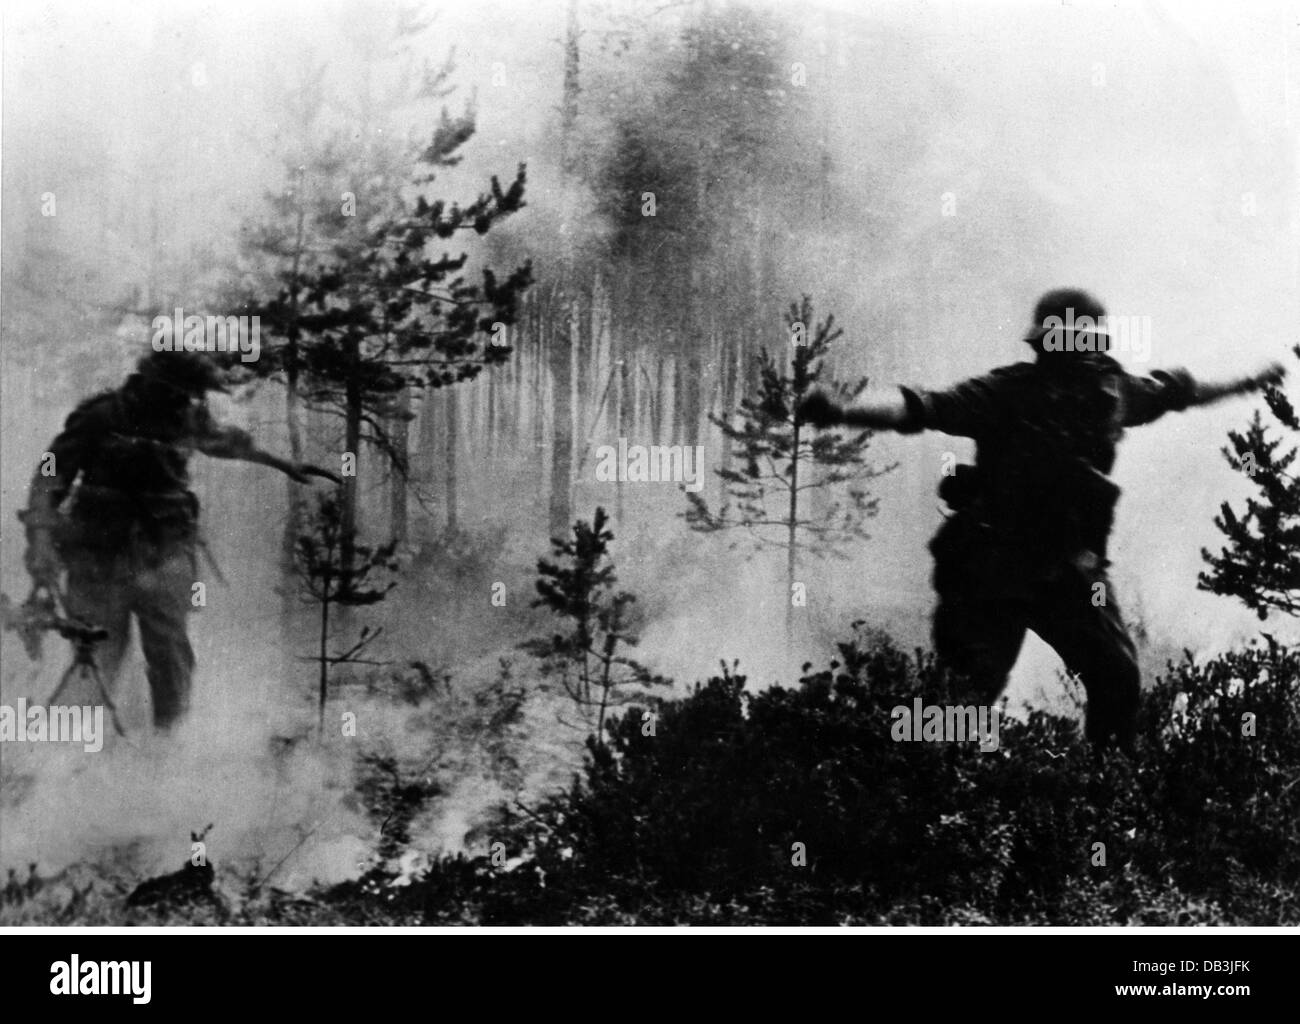 events, Second World War / WWII, Russia 1942 / 1943, German soldiers in a burning forest, circa 1942, Additional - Stock Image